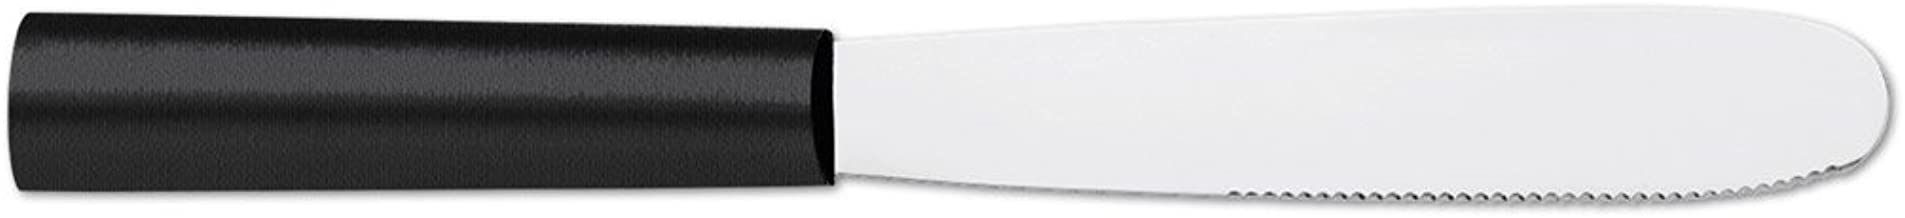 product image for Rada Cutlery Super Spreader – Stainless Steel Spreading Knife With Stainless Steel Black Resin Handle Made in USA